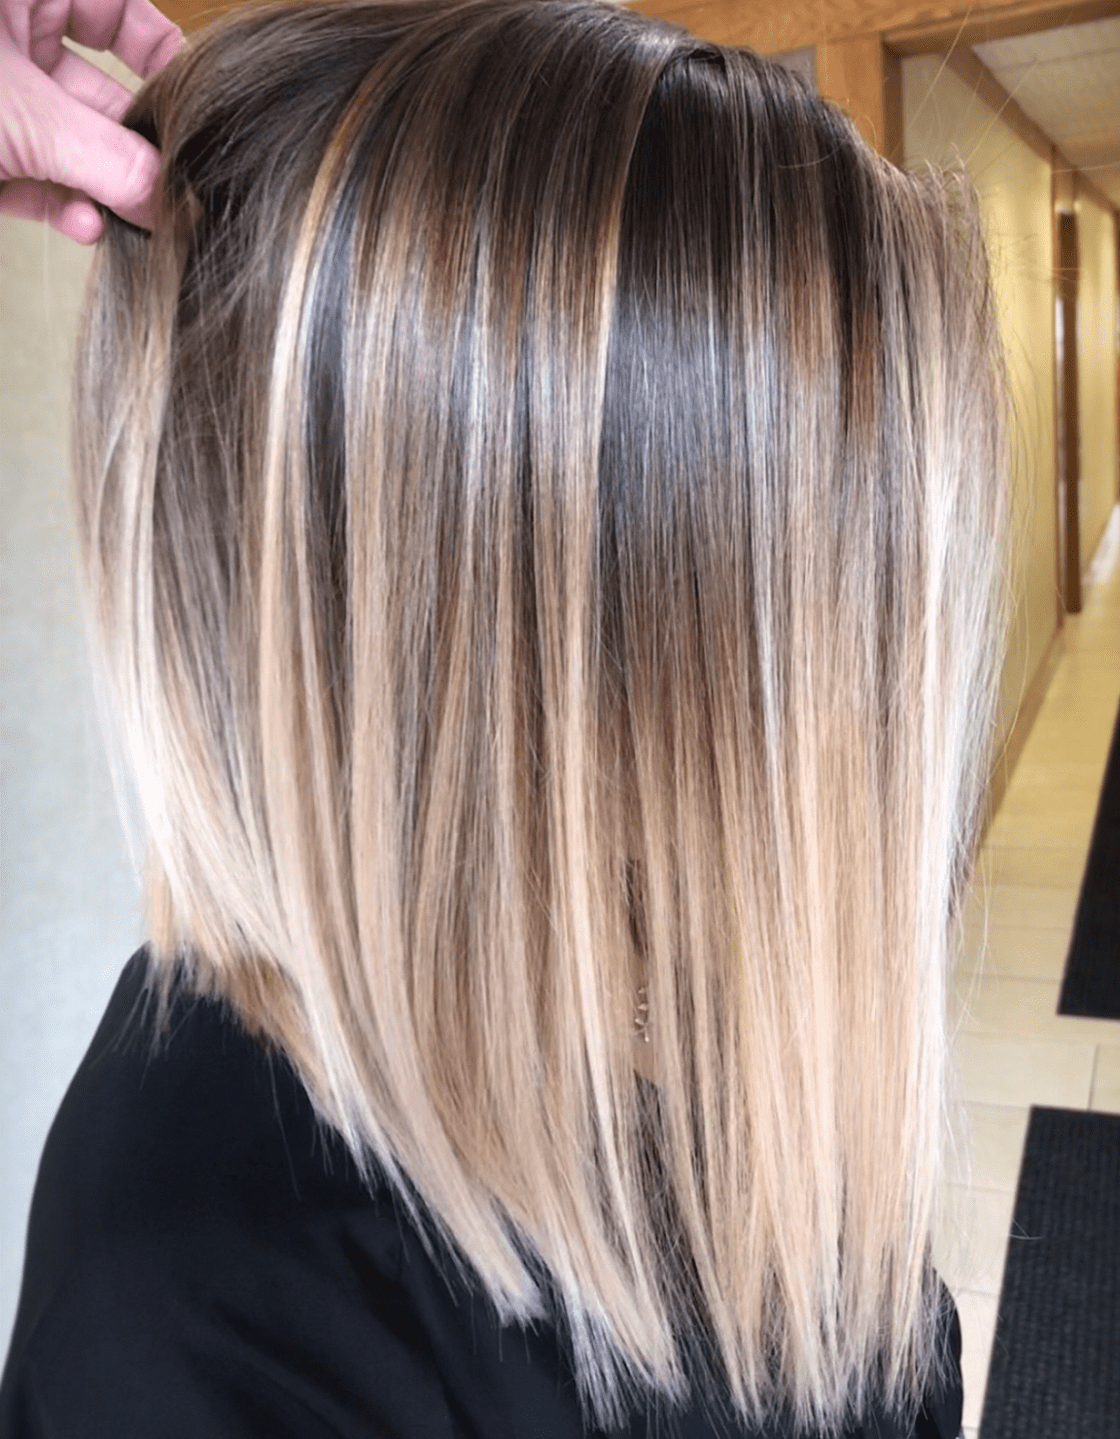 9 New Brown to Blonde Balayage Ideas Not Seen Before  Short hair